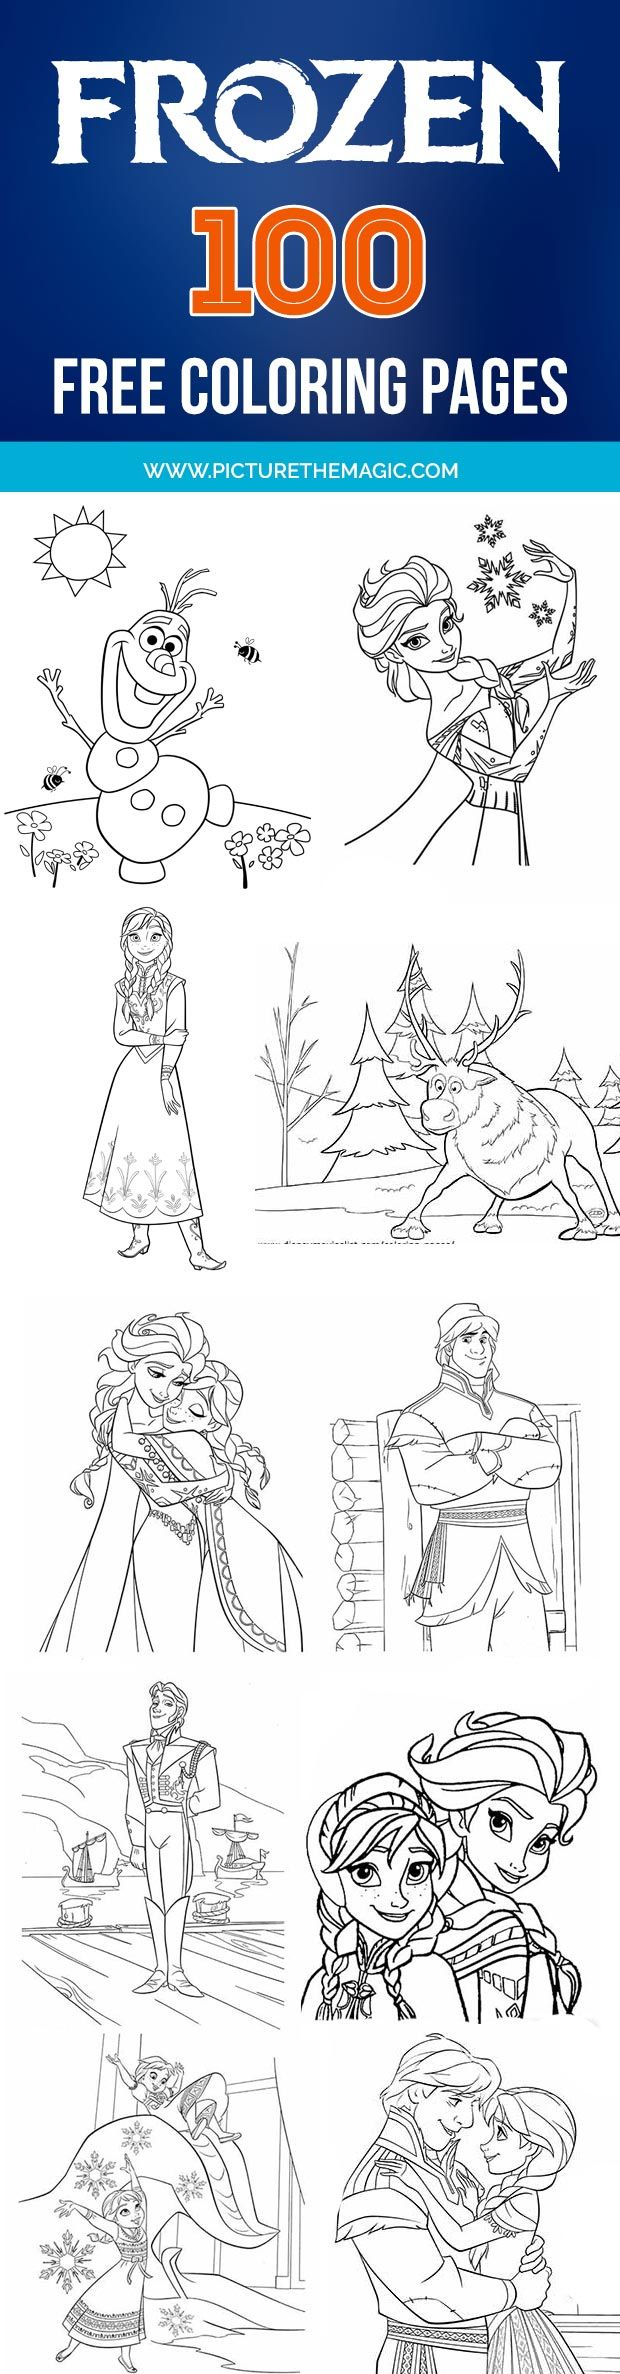 101 Frozen Coloring Pages (May 2018 Edition) - Elsa coloring pages ...